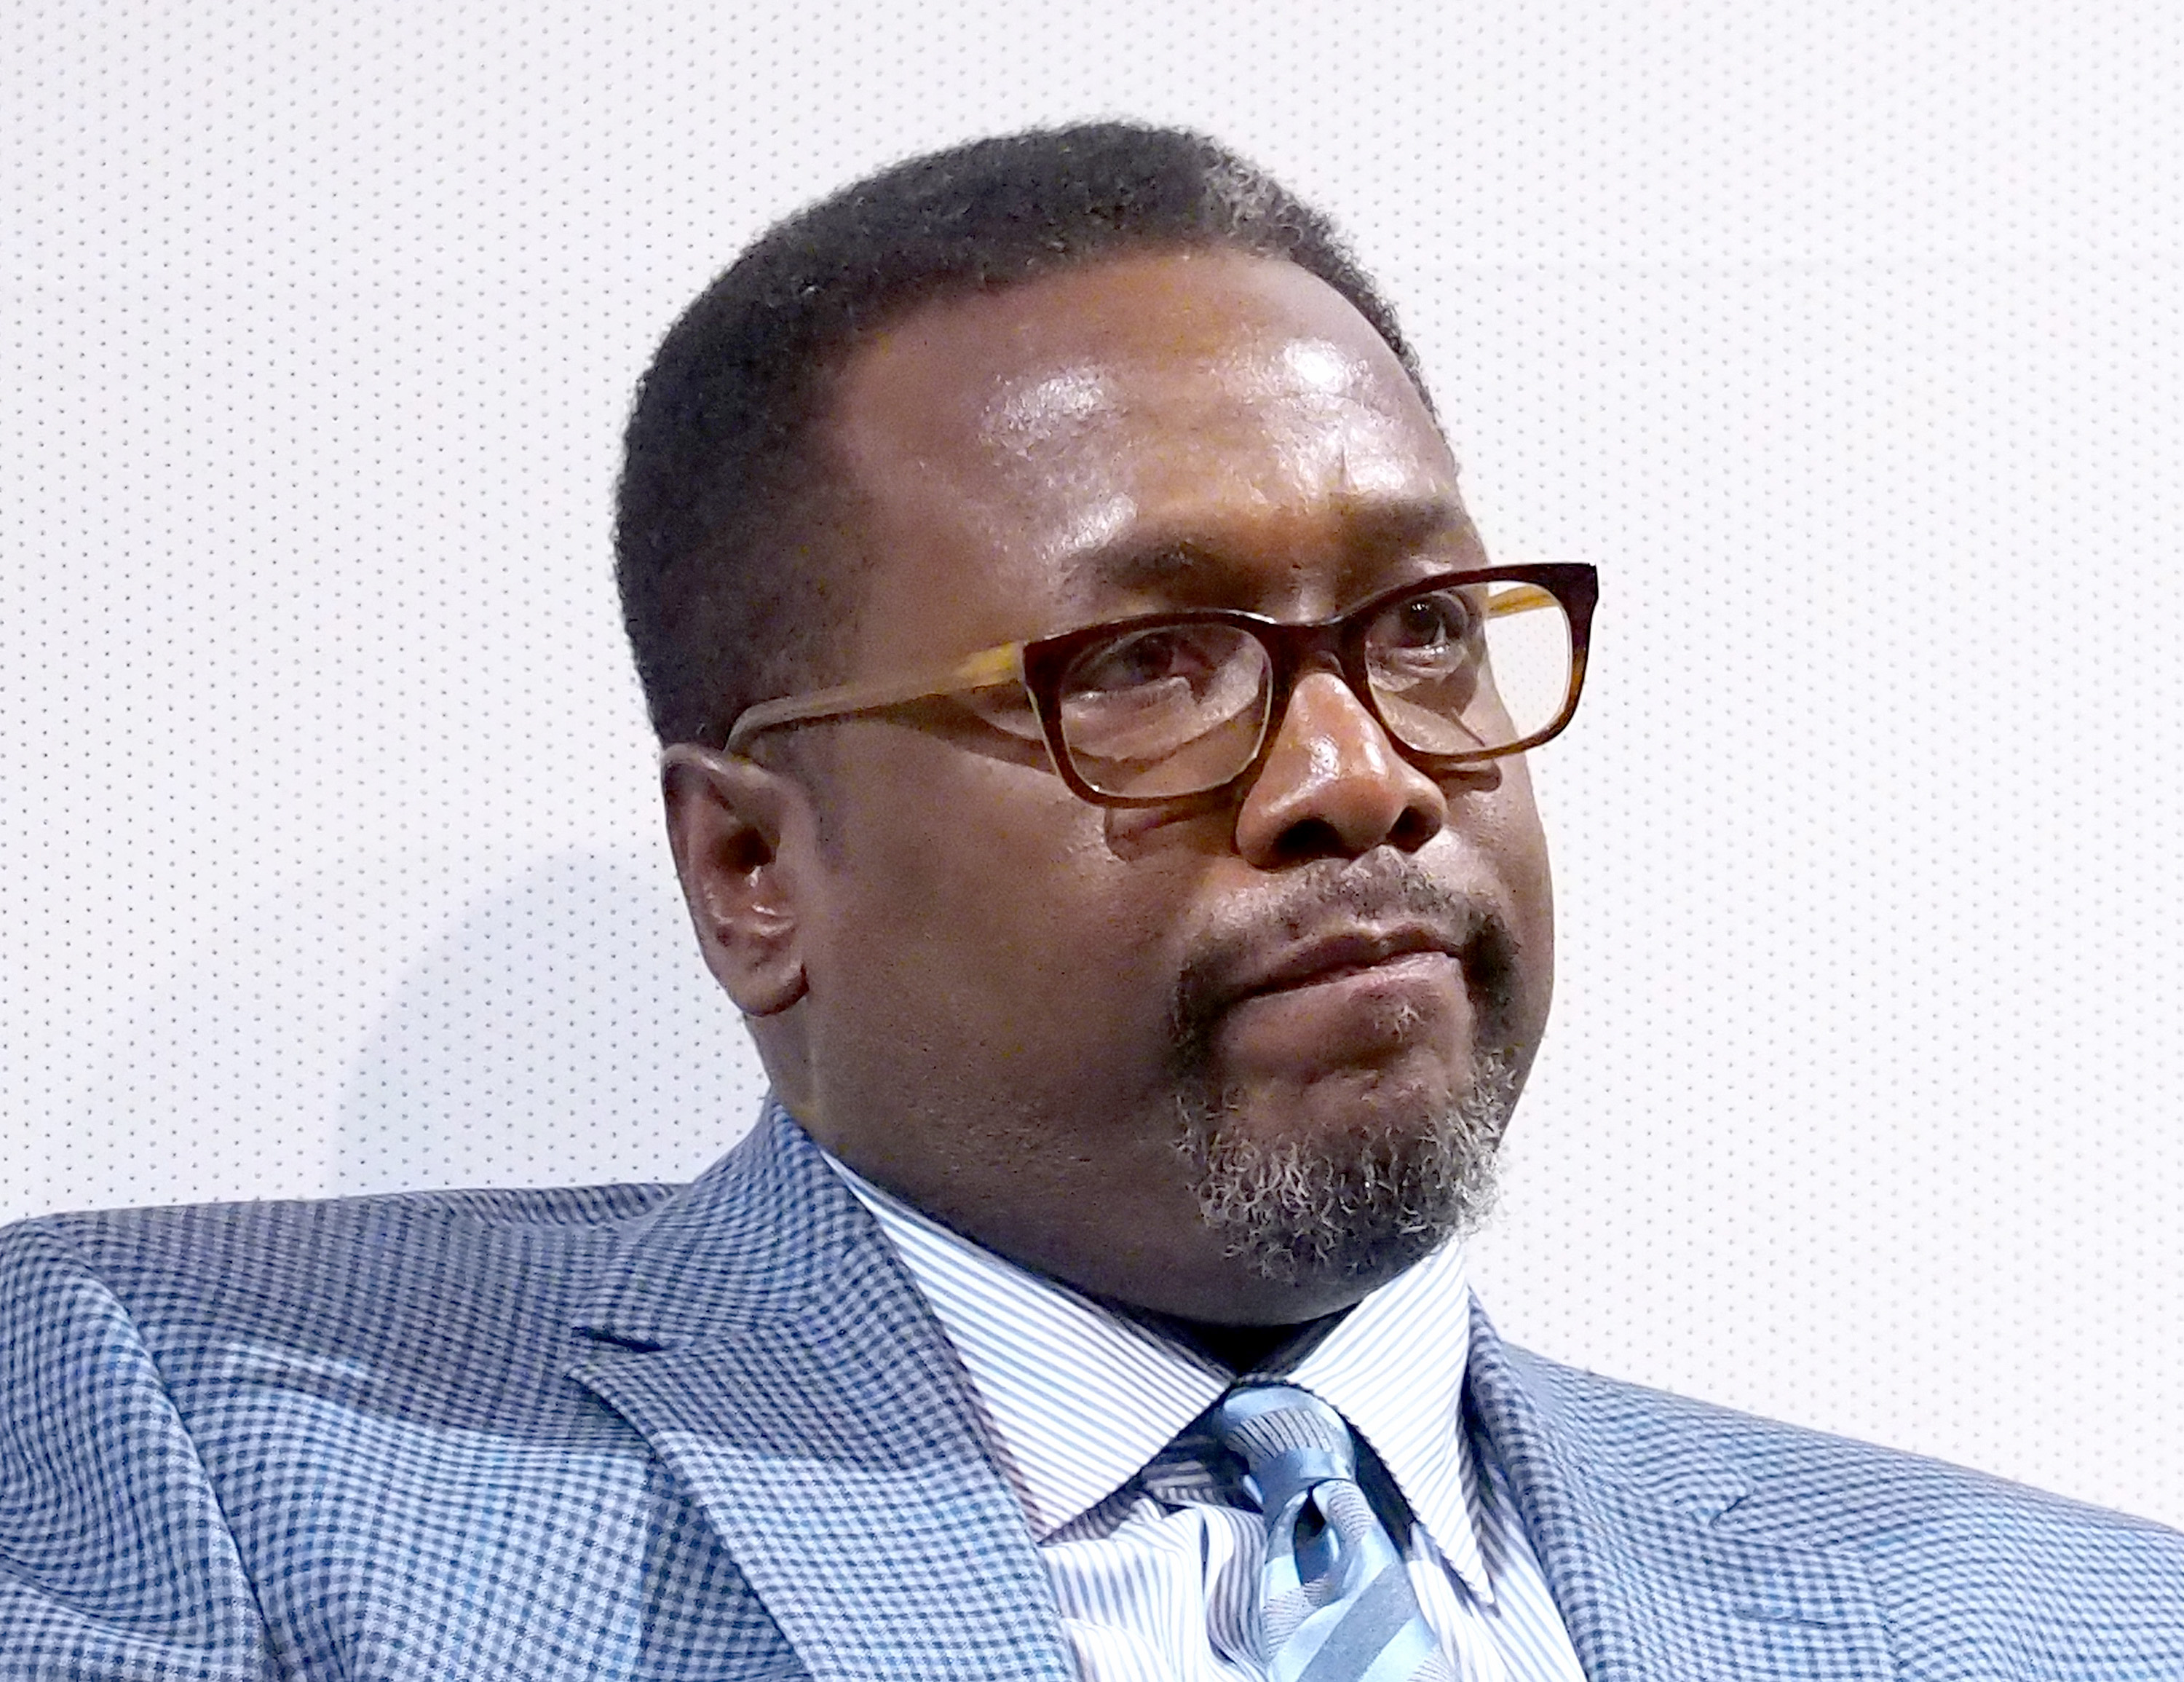 Actor Wendell Pierce speaks onstage at the NYC Special Screening of HBO Film  Confirmation   at Signature Theater on April 7, 2016 in New York City.